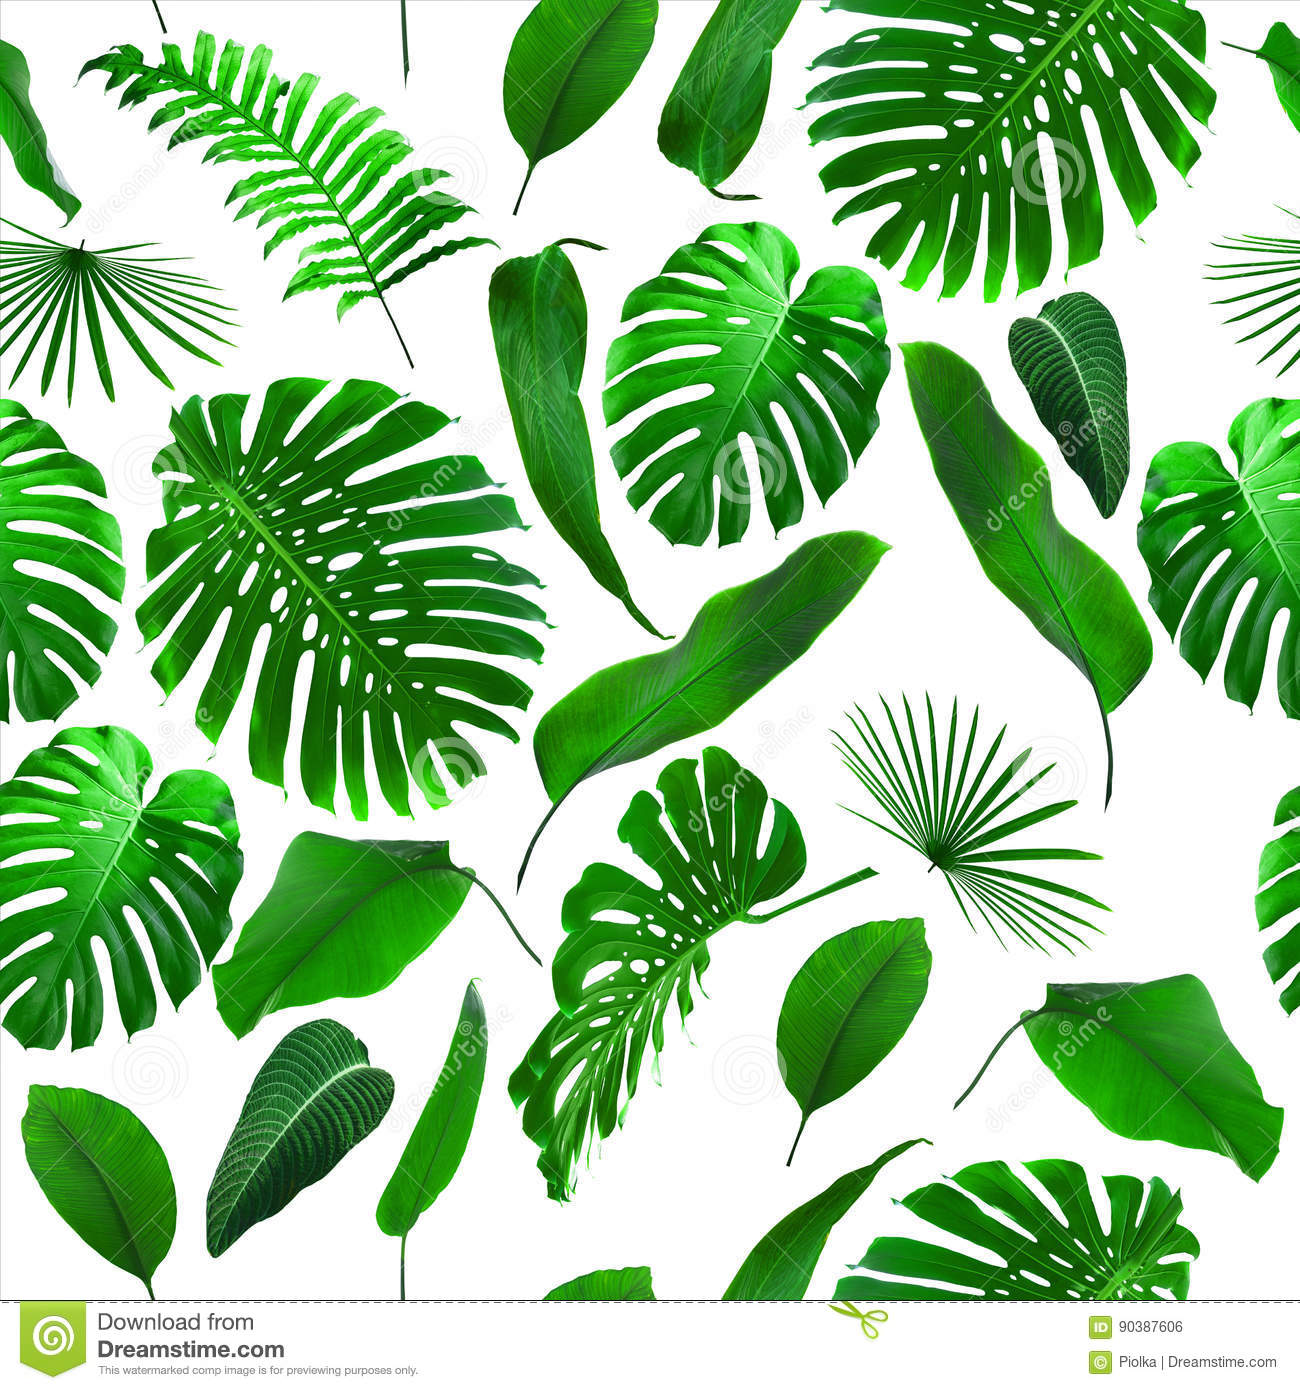 Seamless Tropical Jungle Leaves Background Stock Photo Image Of Forest Banana 90387606 Tropical wallpaper self adhesive peel and stick banana leaf wall mural removable exotic leaves wallpaper tropical leaf pattern wall mural themes : dreamstime com